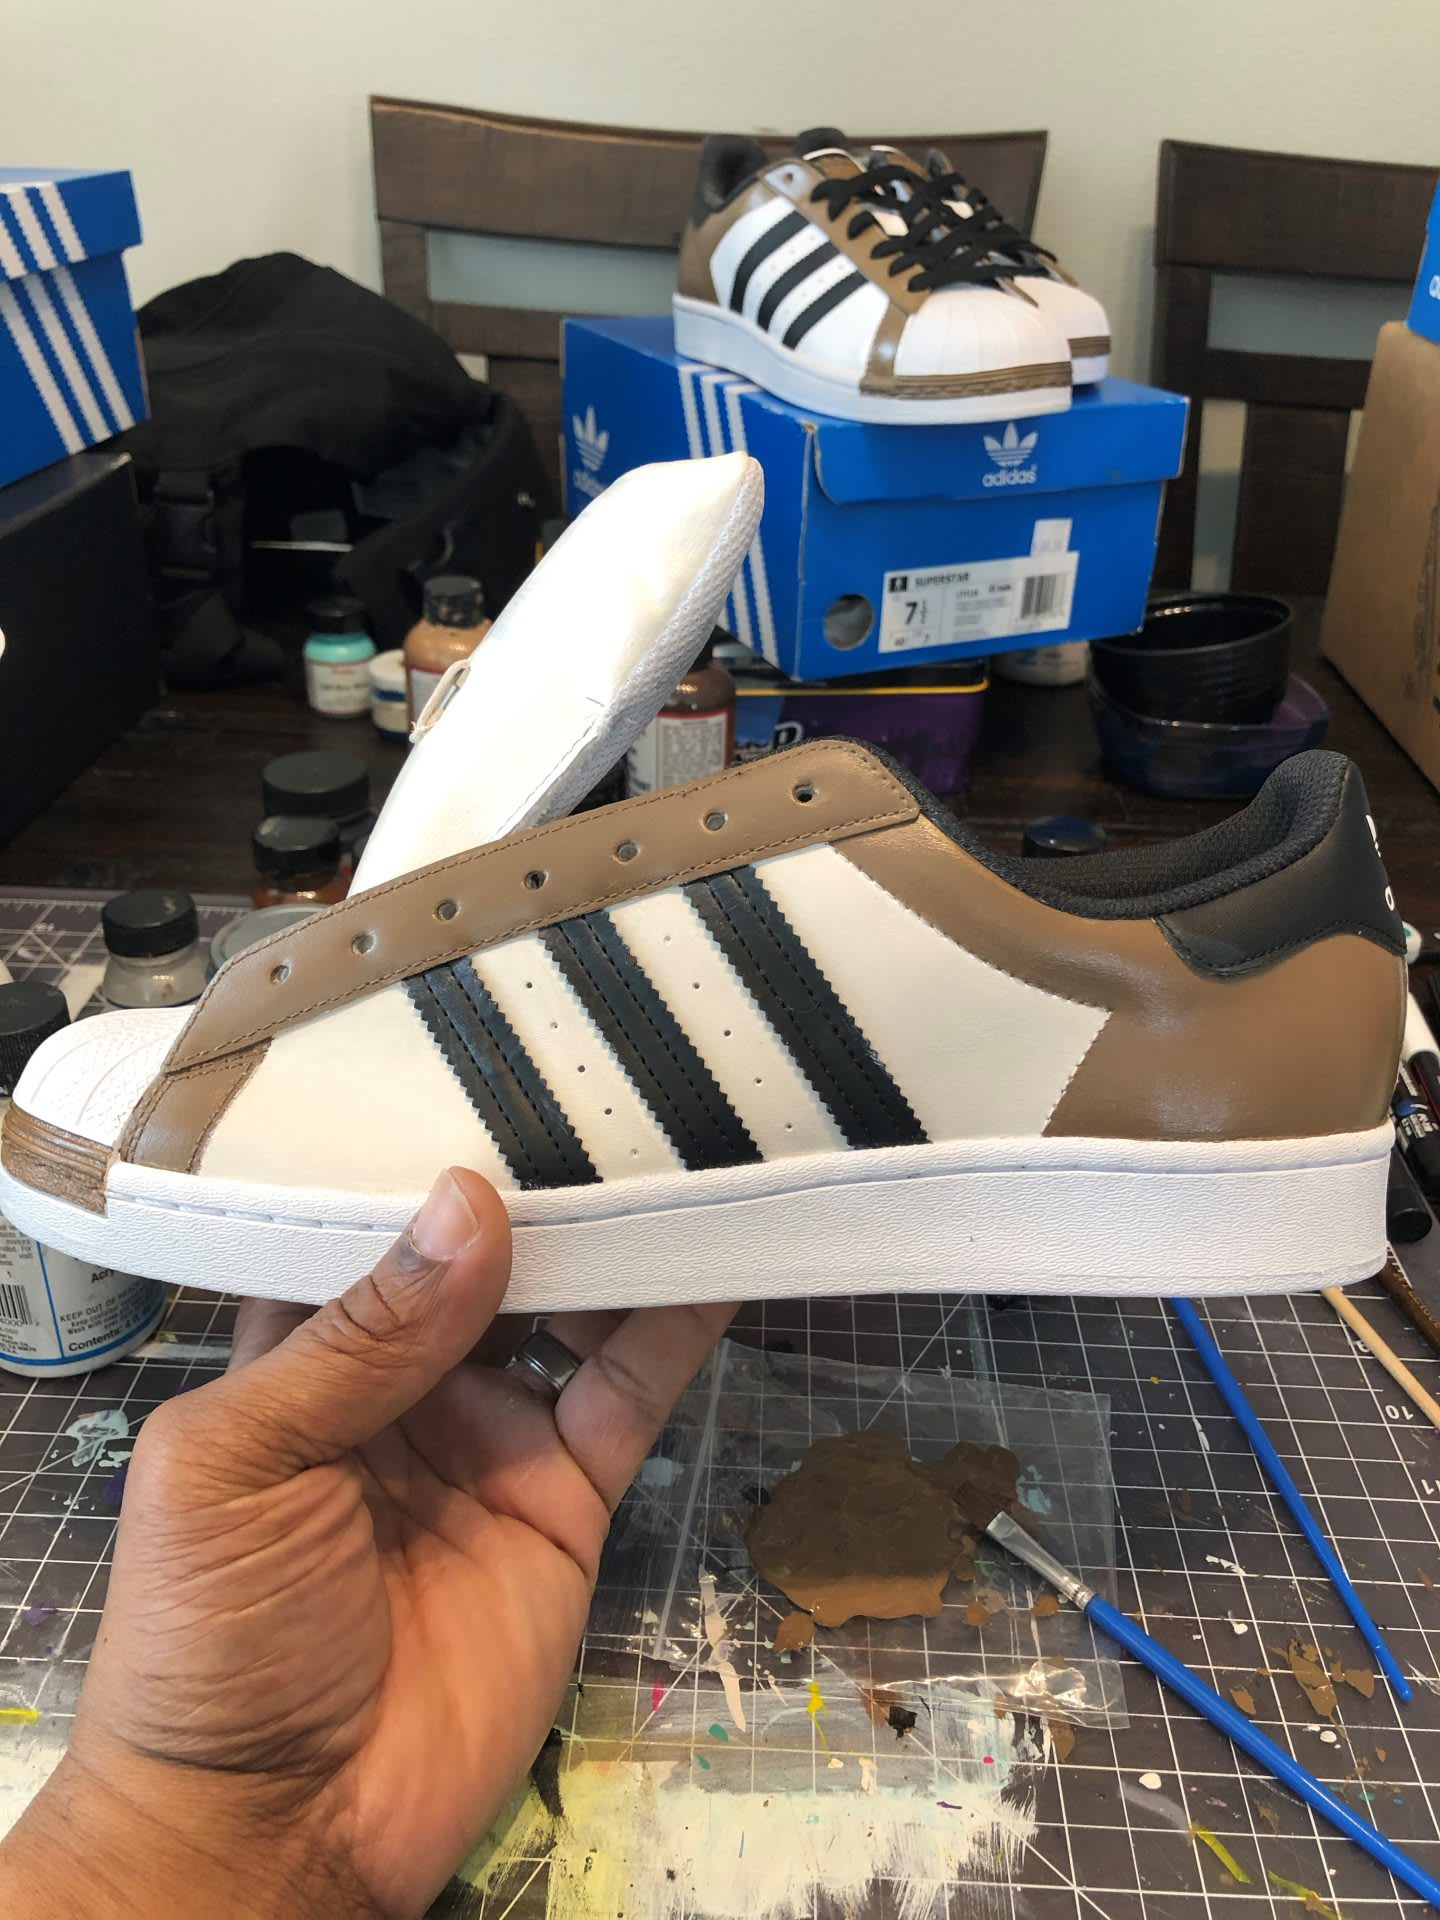 Sneakers customized with bespoke designs, trainers, shoes, Todd Standsbury, adidas, employee, creative, designer